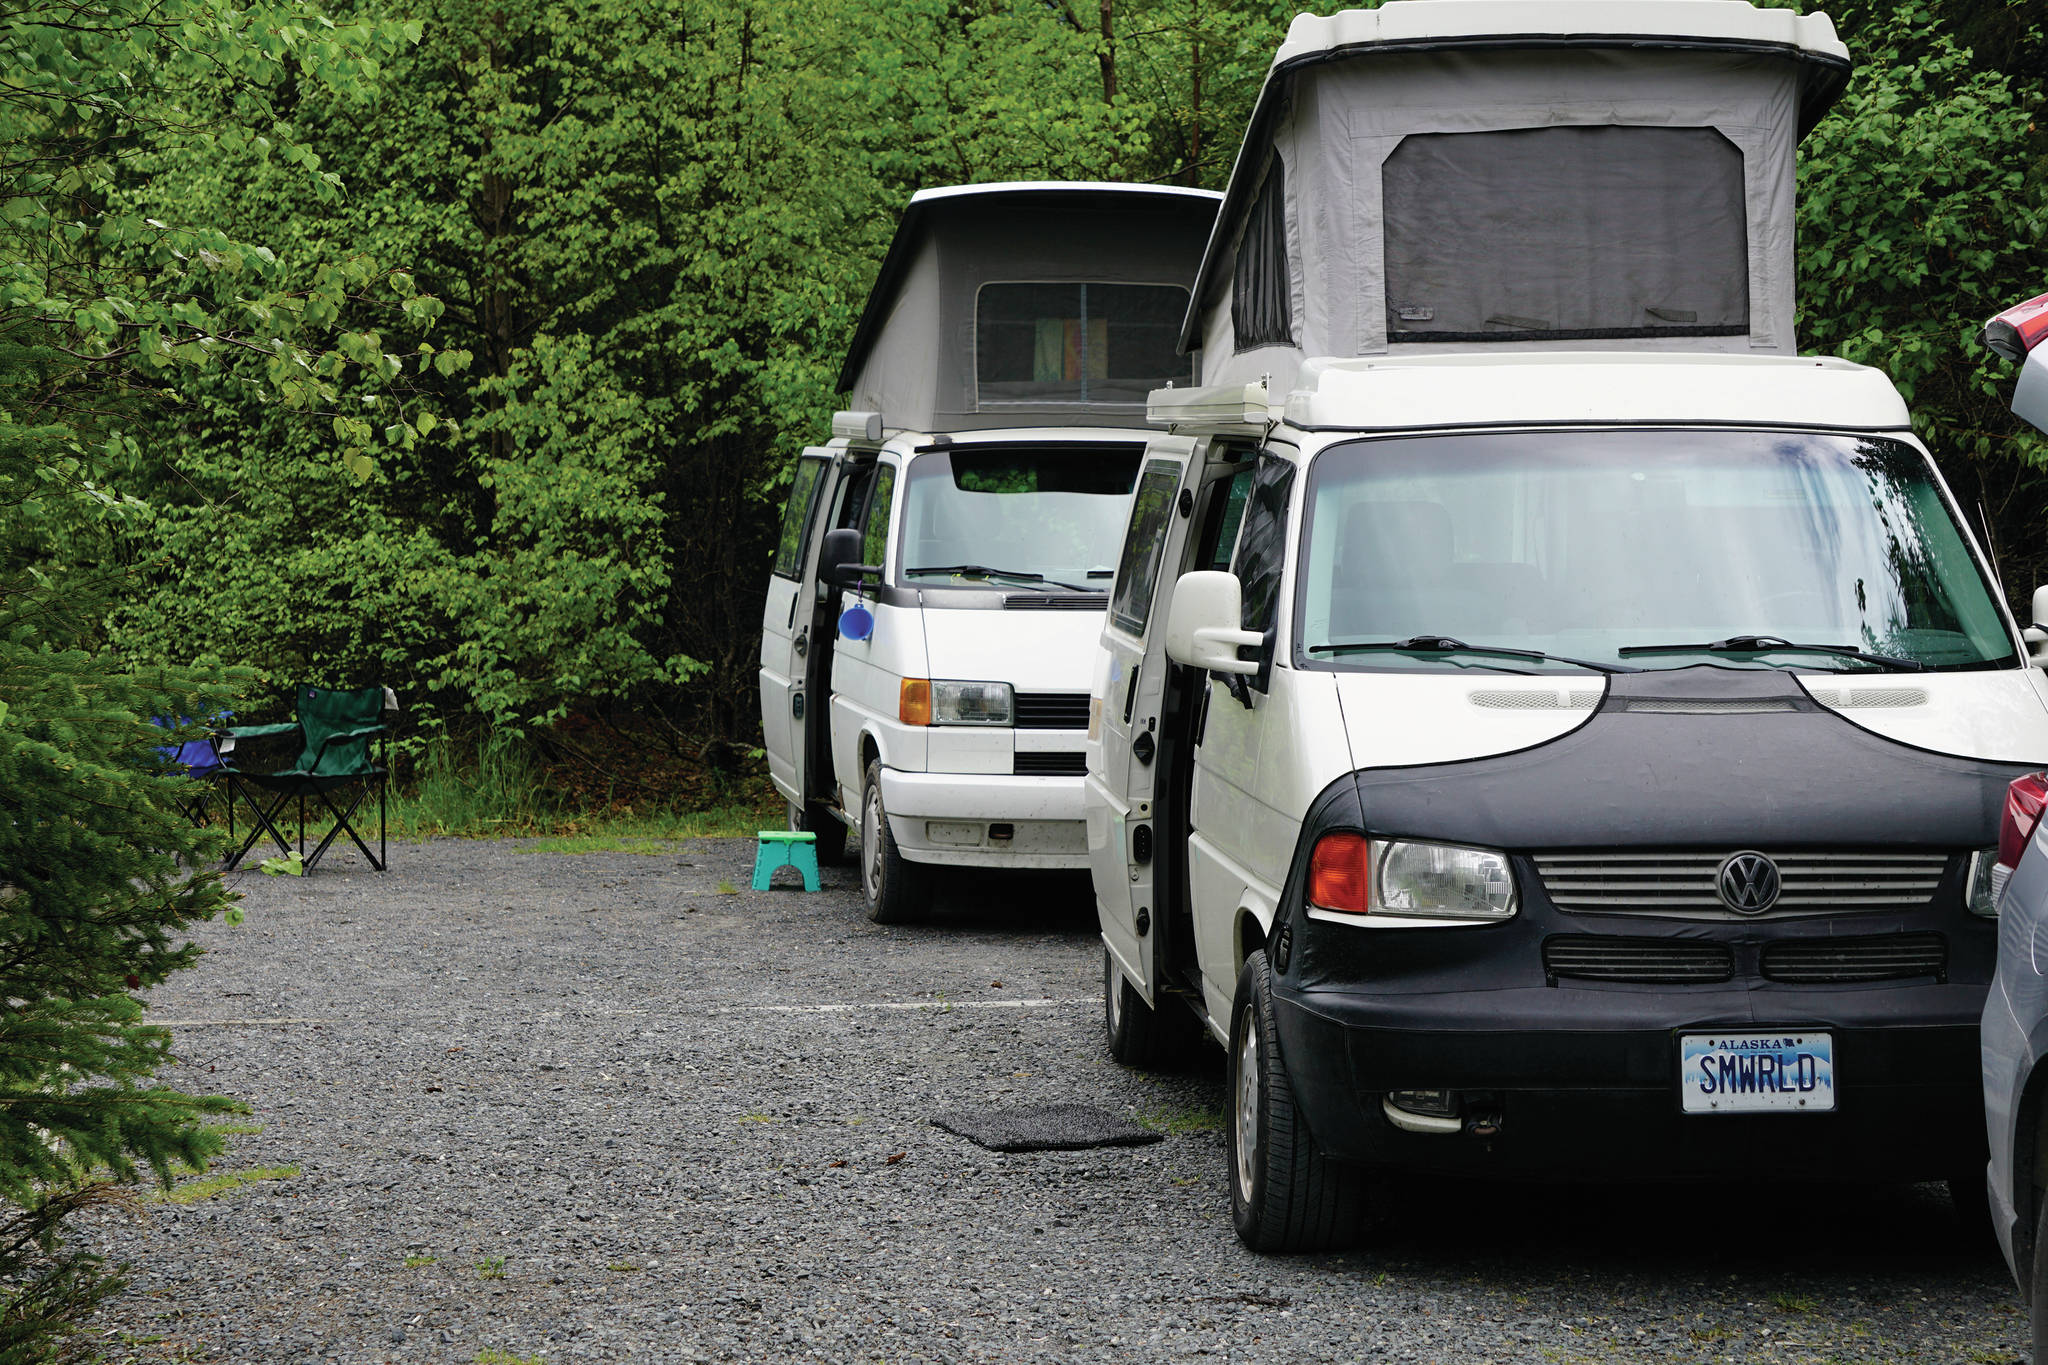 Two vintage VW campers are seen on Thursday, June 10, 2021, at the Trail River Campground near Seward, Alaska. (Photo by Michael Armstrong/Homer News)